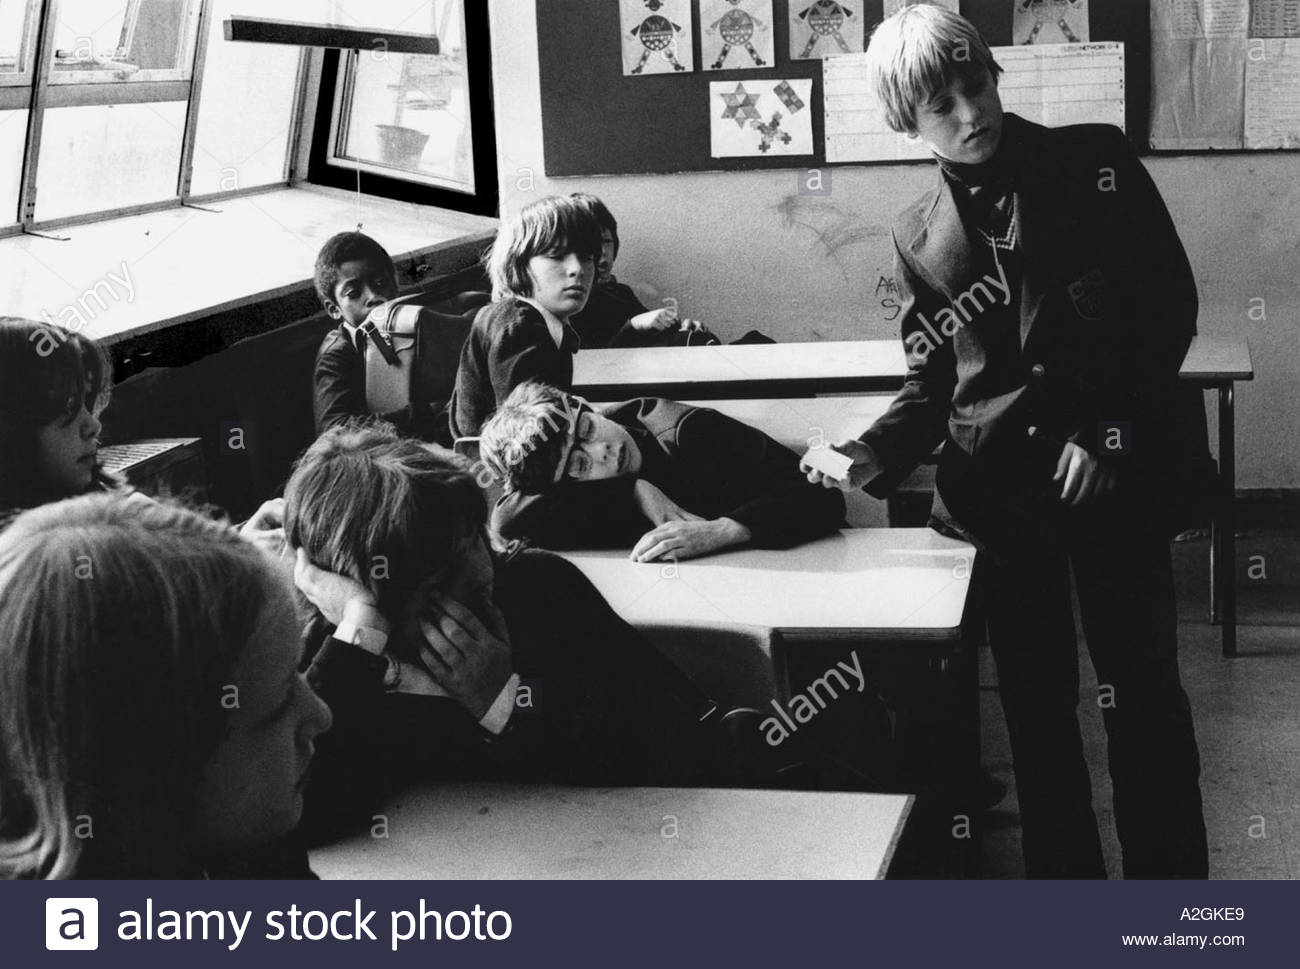 Secondary school children creating chaos disrupting the classroom Stock Photo